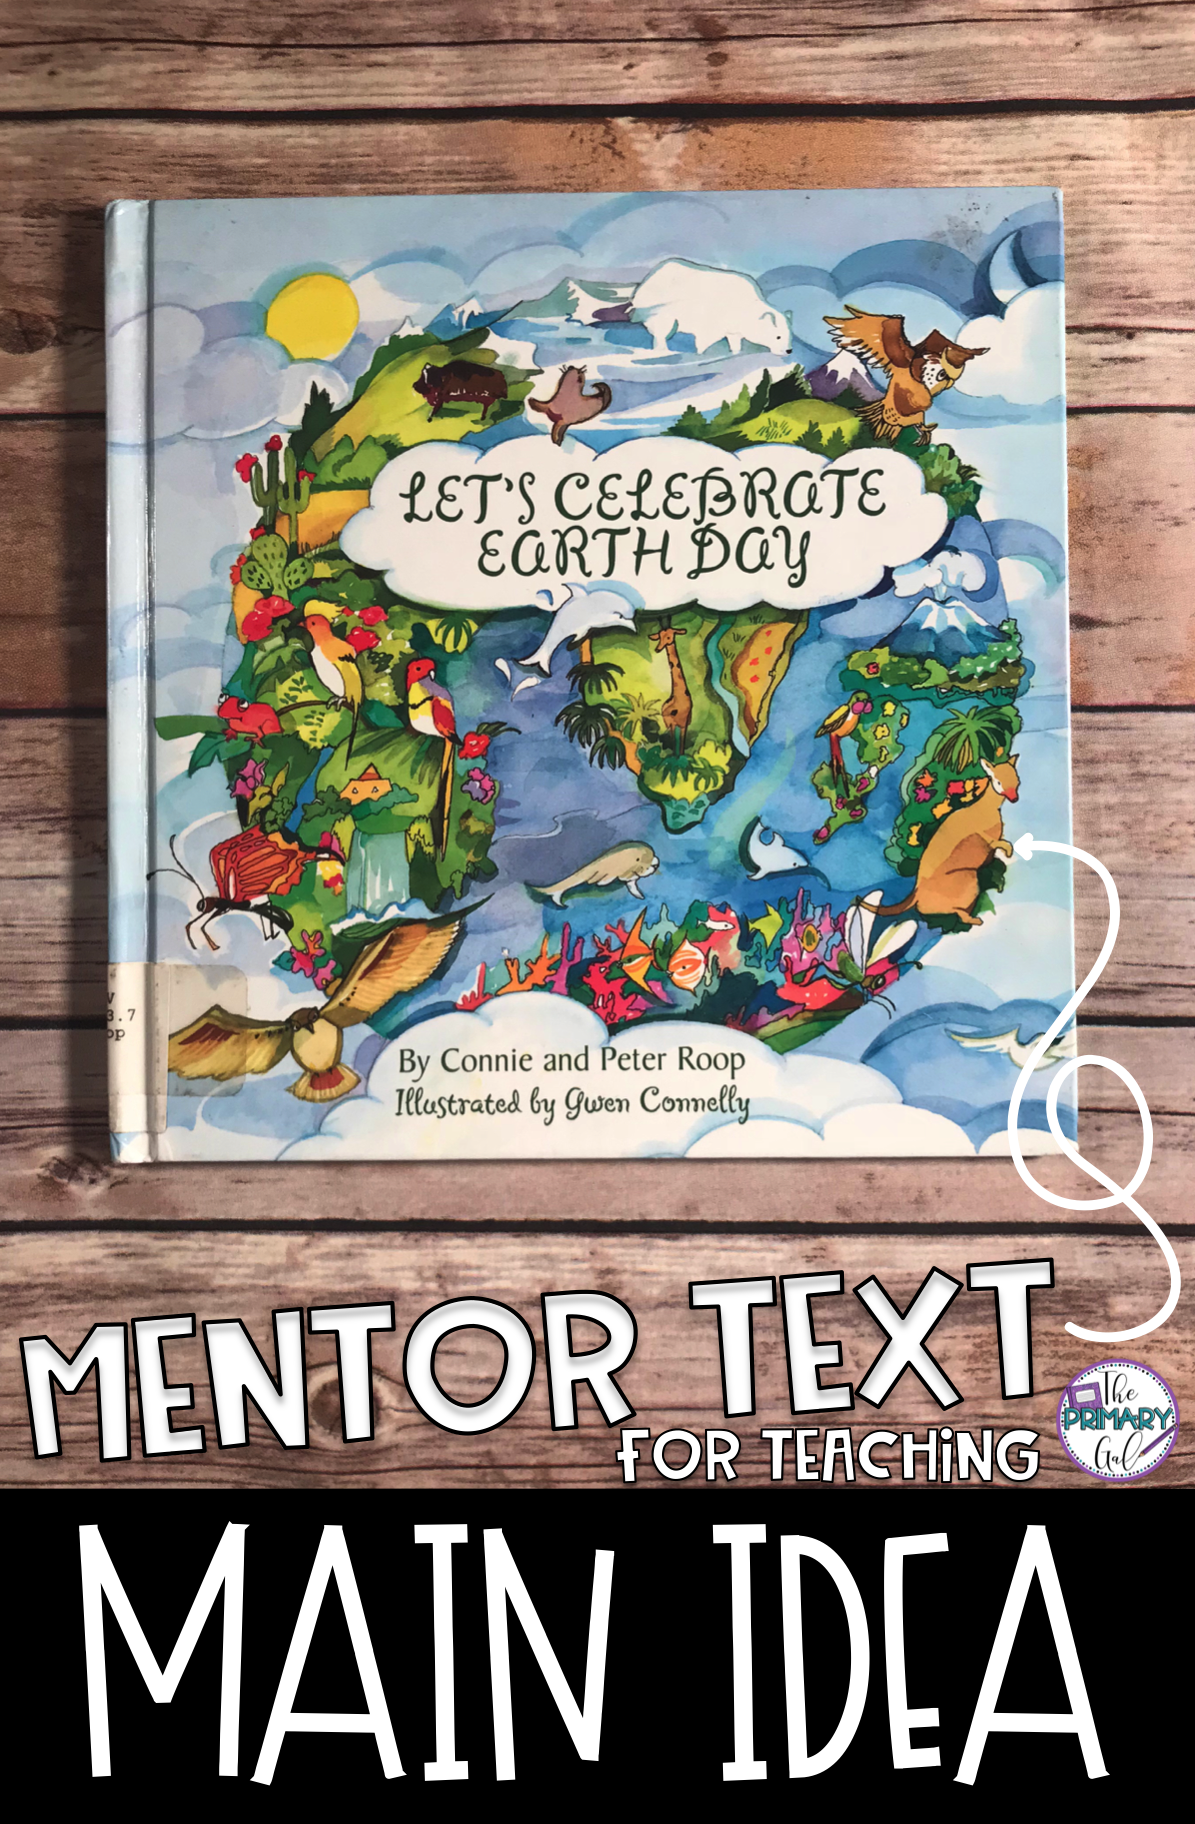 Earth Day Is Right Around The Corner And This Mentor Text